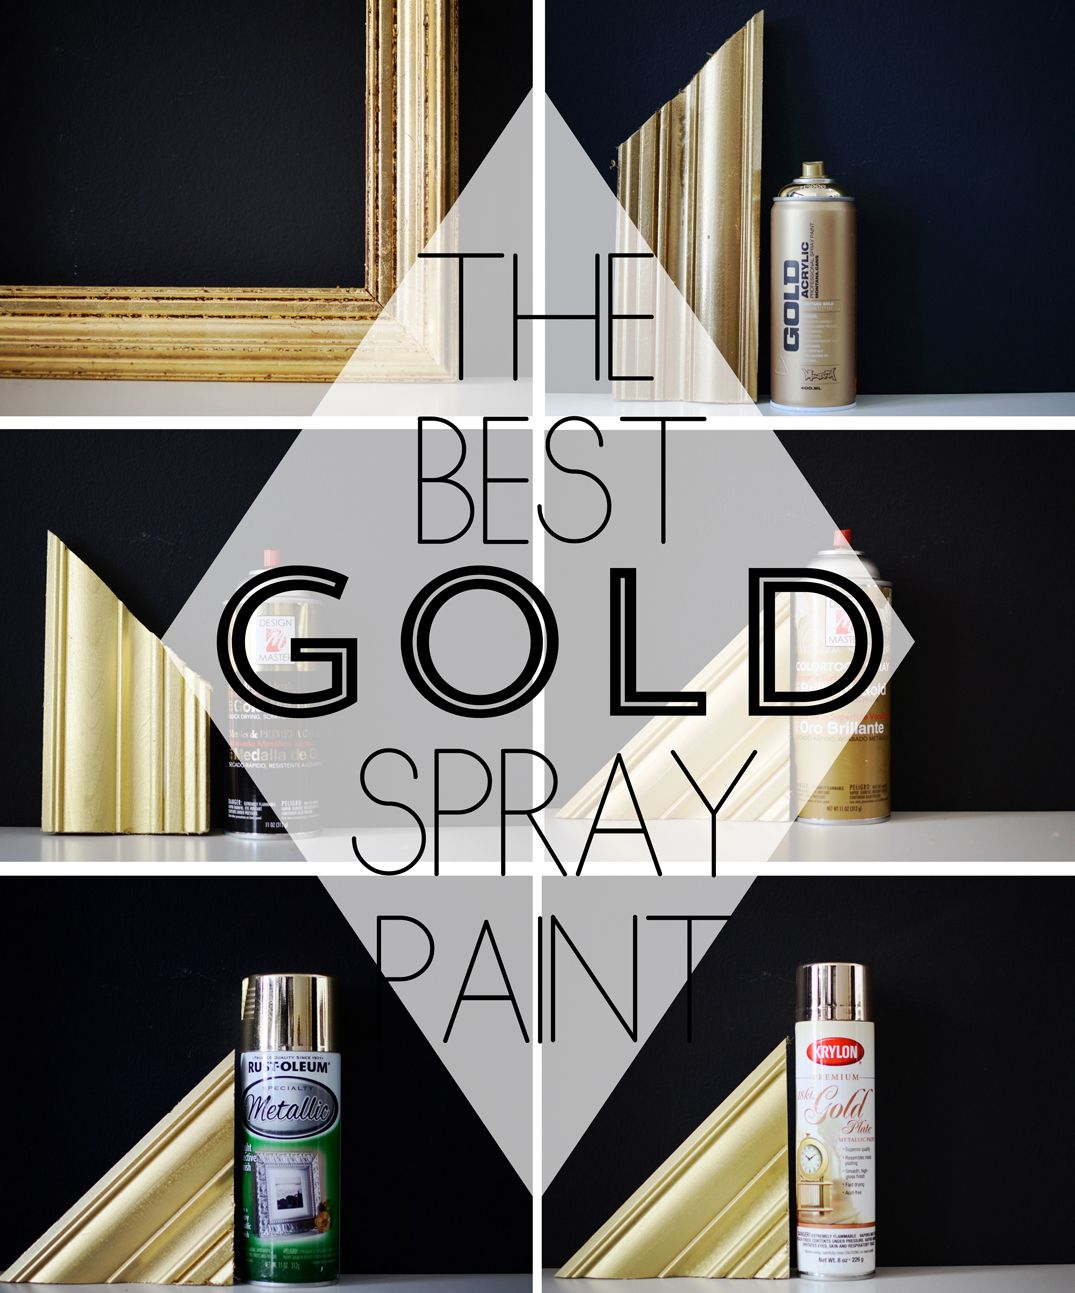 Finding The Perfect Gold Spray Paint Best Gold Spray Paint Gold Spray Paint Gold Spray